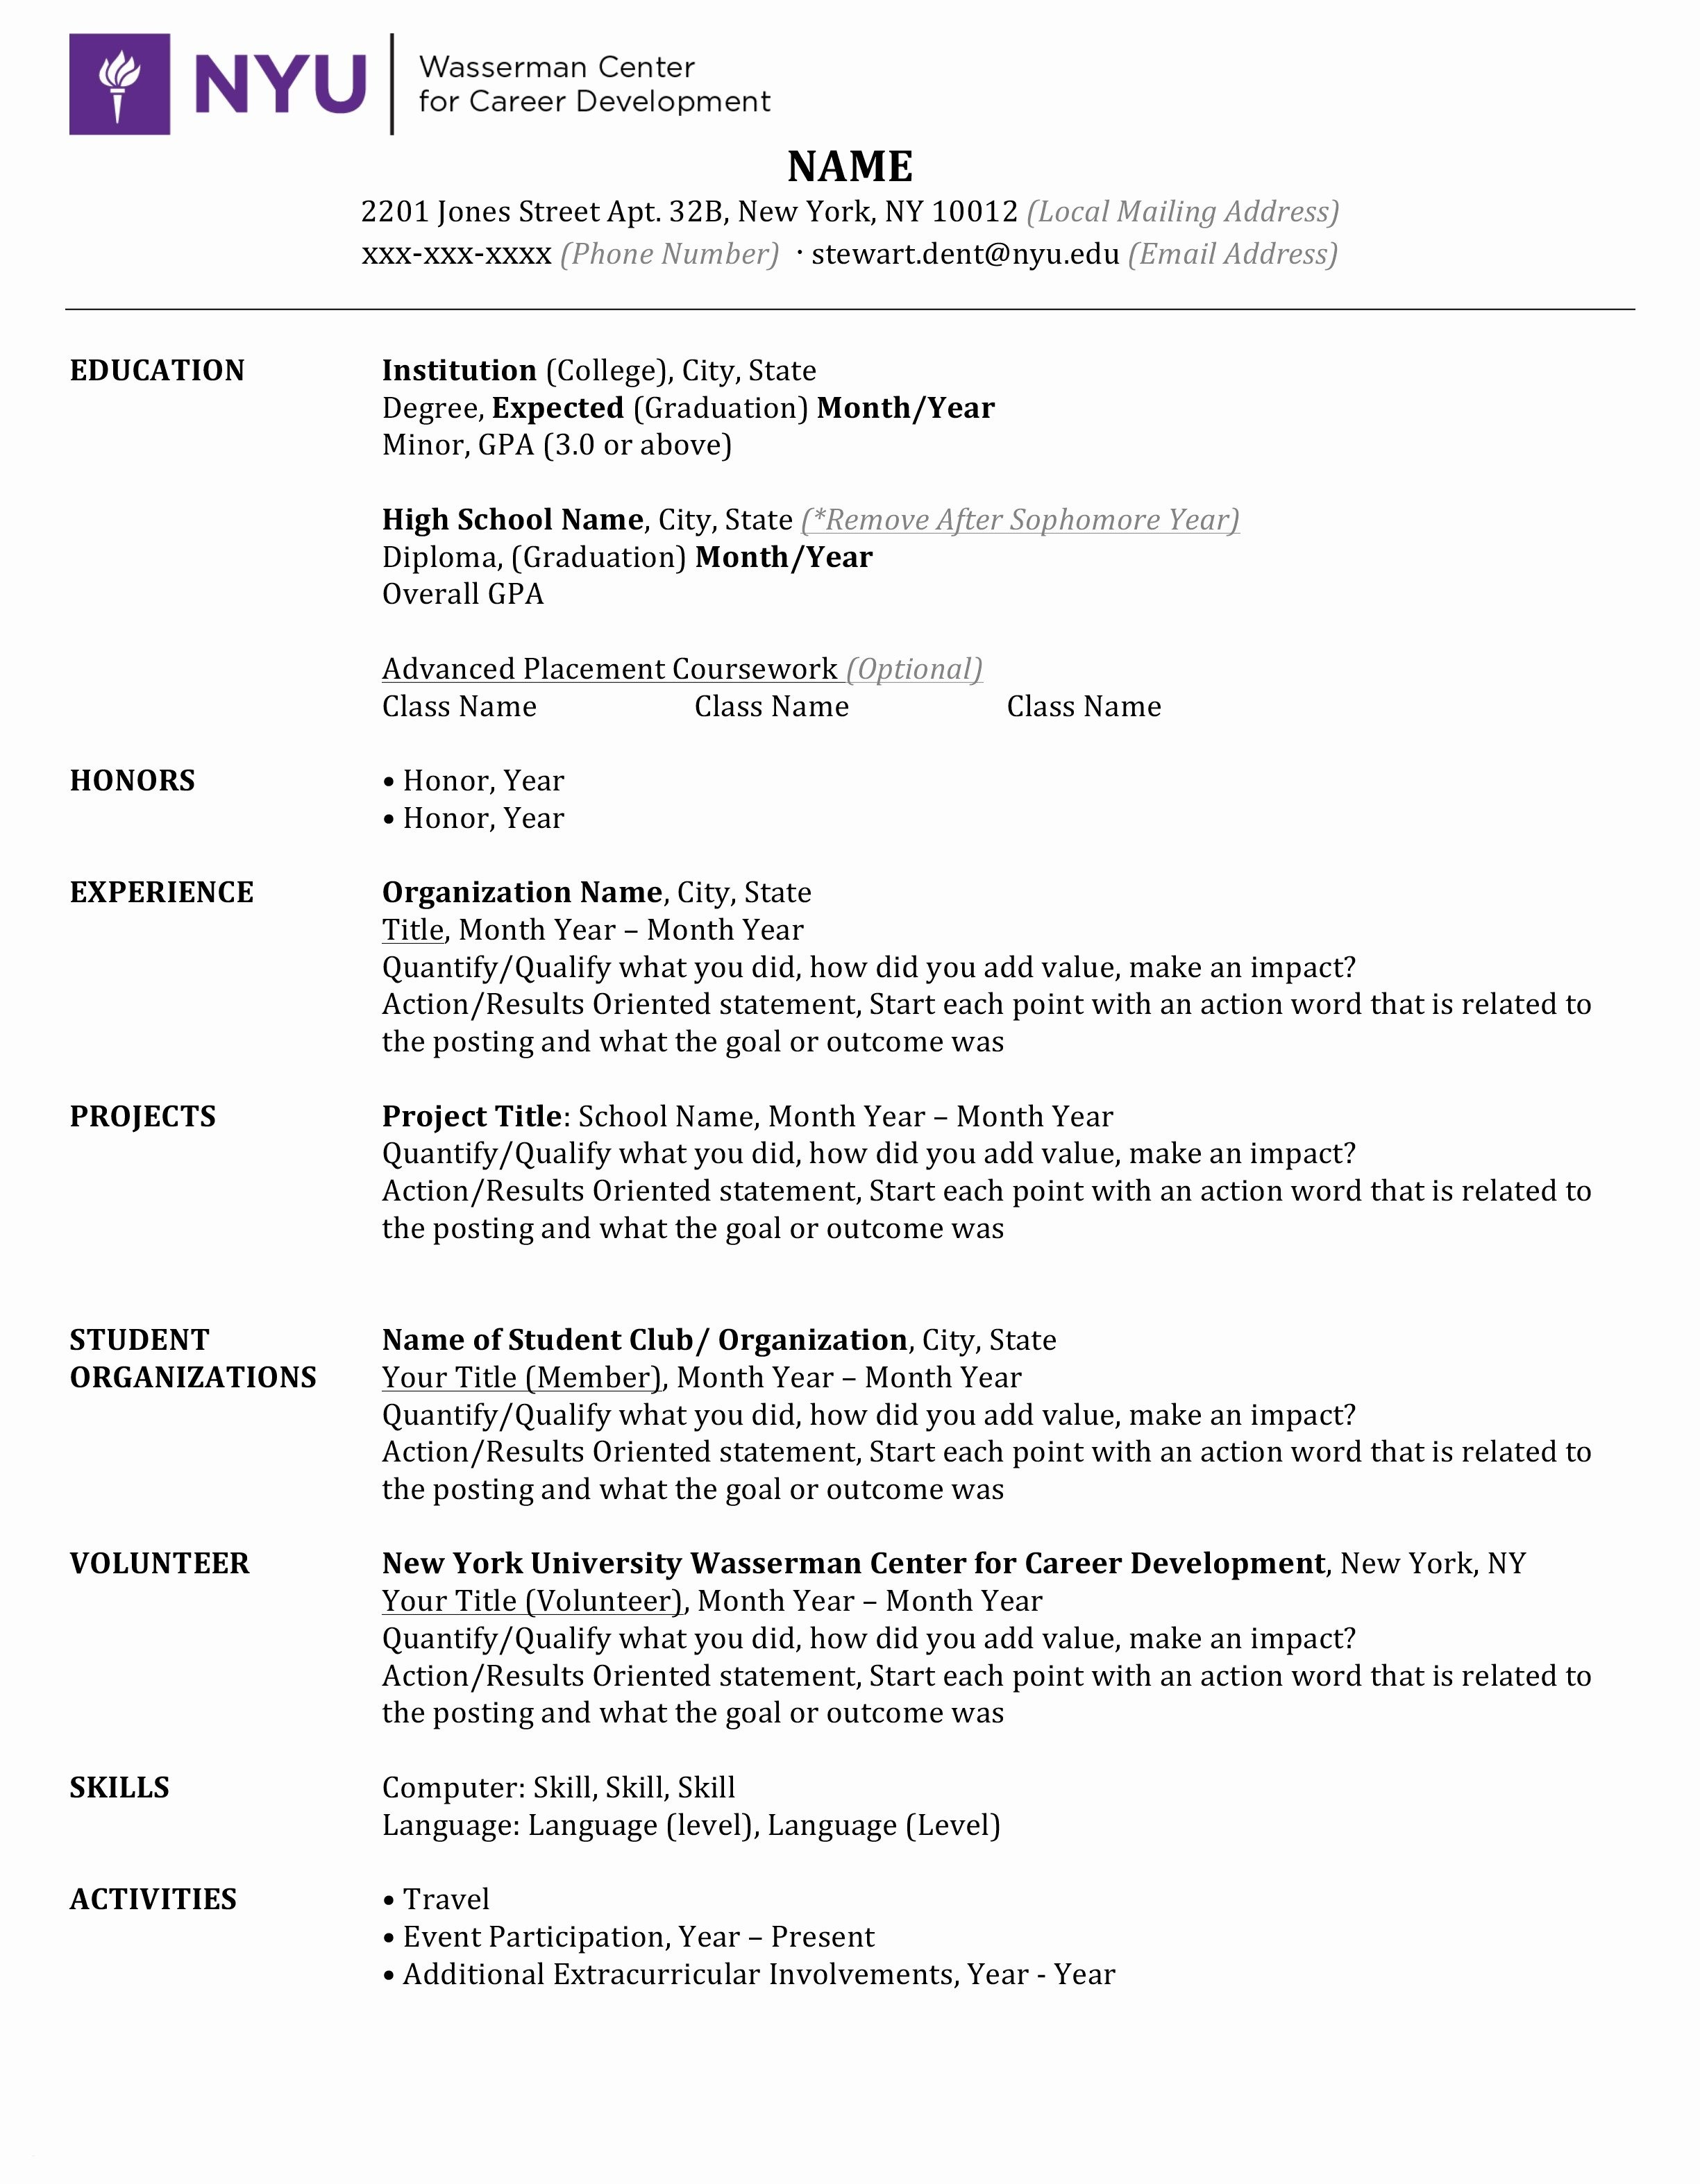 acting resume template download example-Free Resume Template Download Unique Resume Template Download Word New Resume Layouts Free Resume Free 20-l